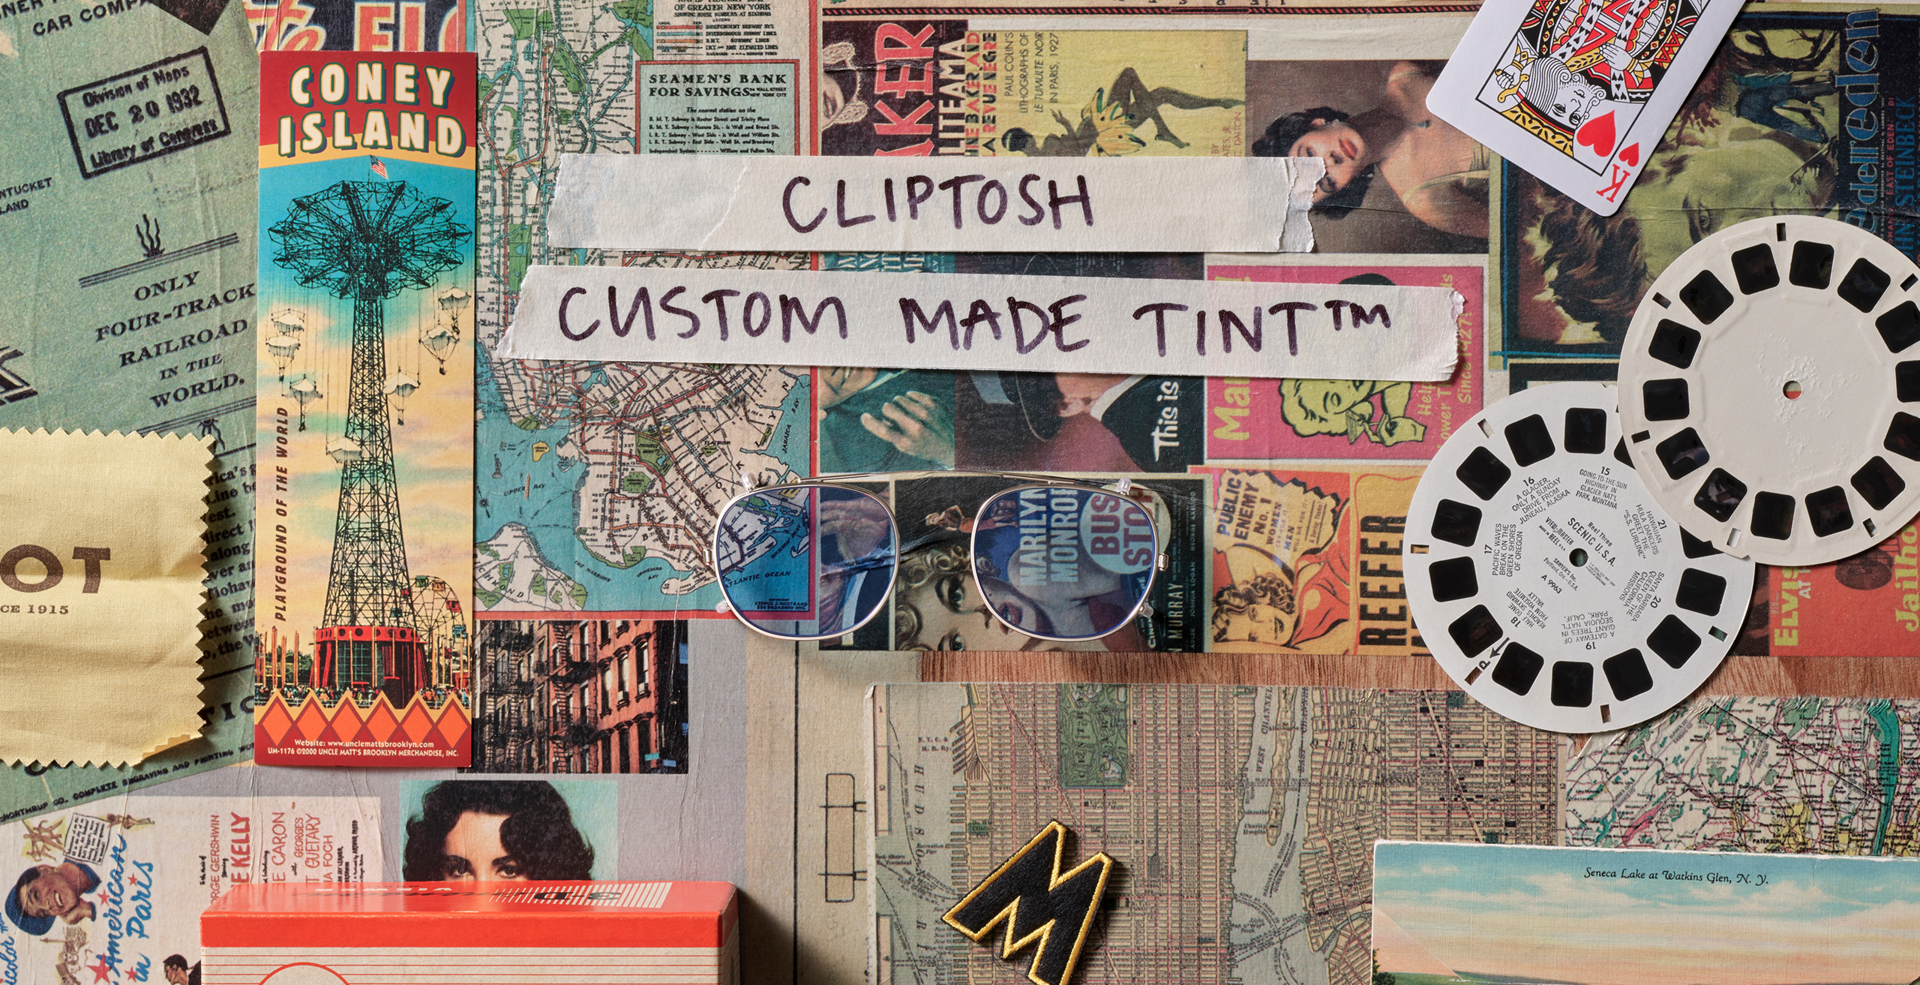 CLIPTOSH CUSTOM MADE TINT™